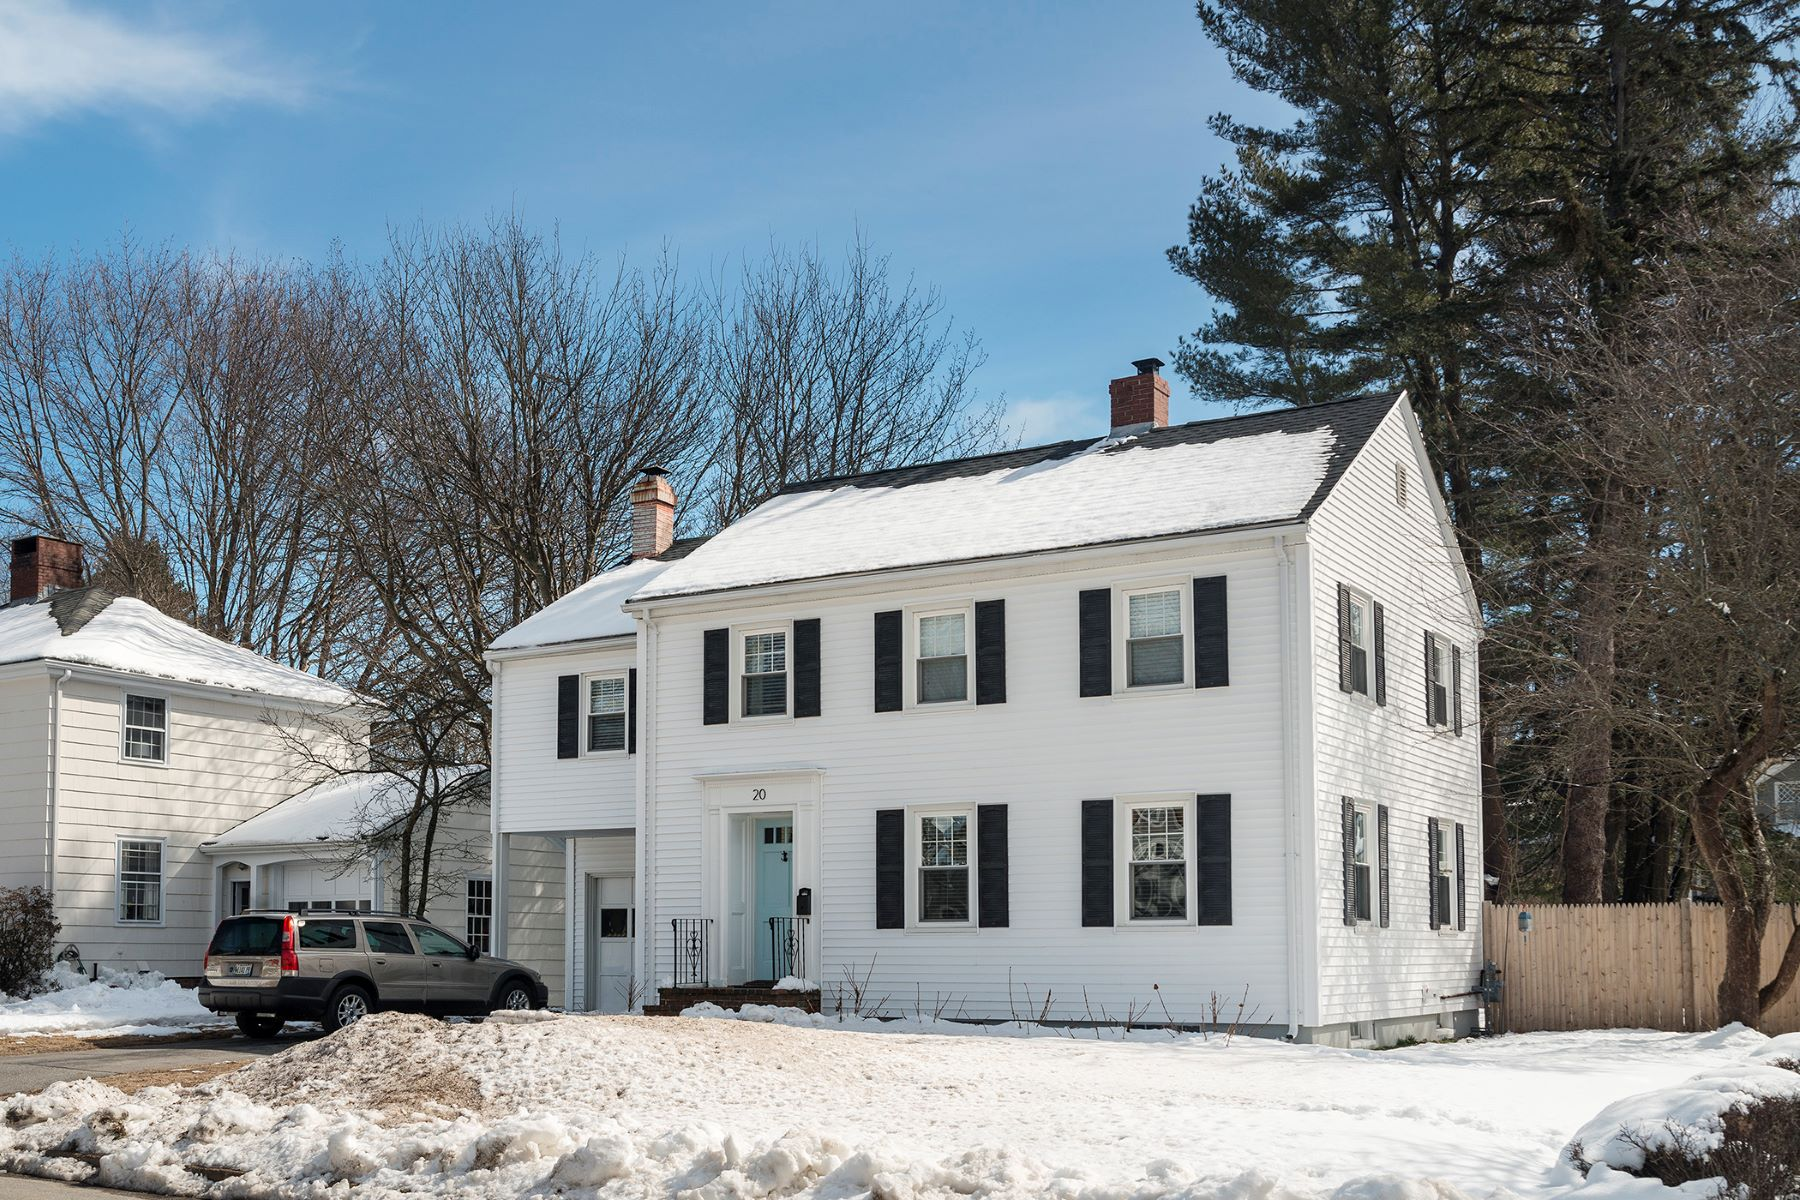 Single Family Home for Sale at 20 Cottage Farms Road 20 Cottage Farms Road Cape Elizabeth, Maine 04107 United States